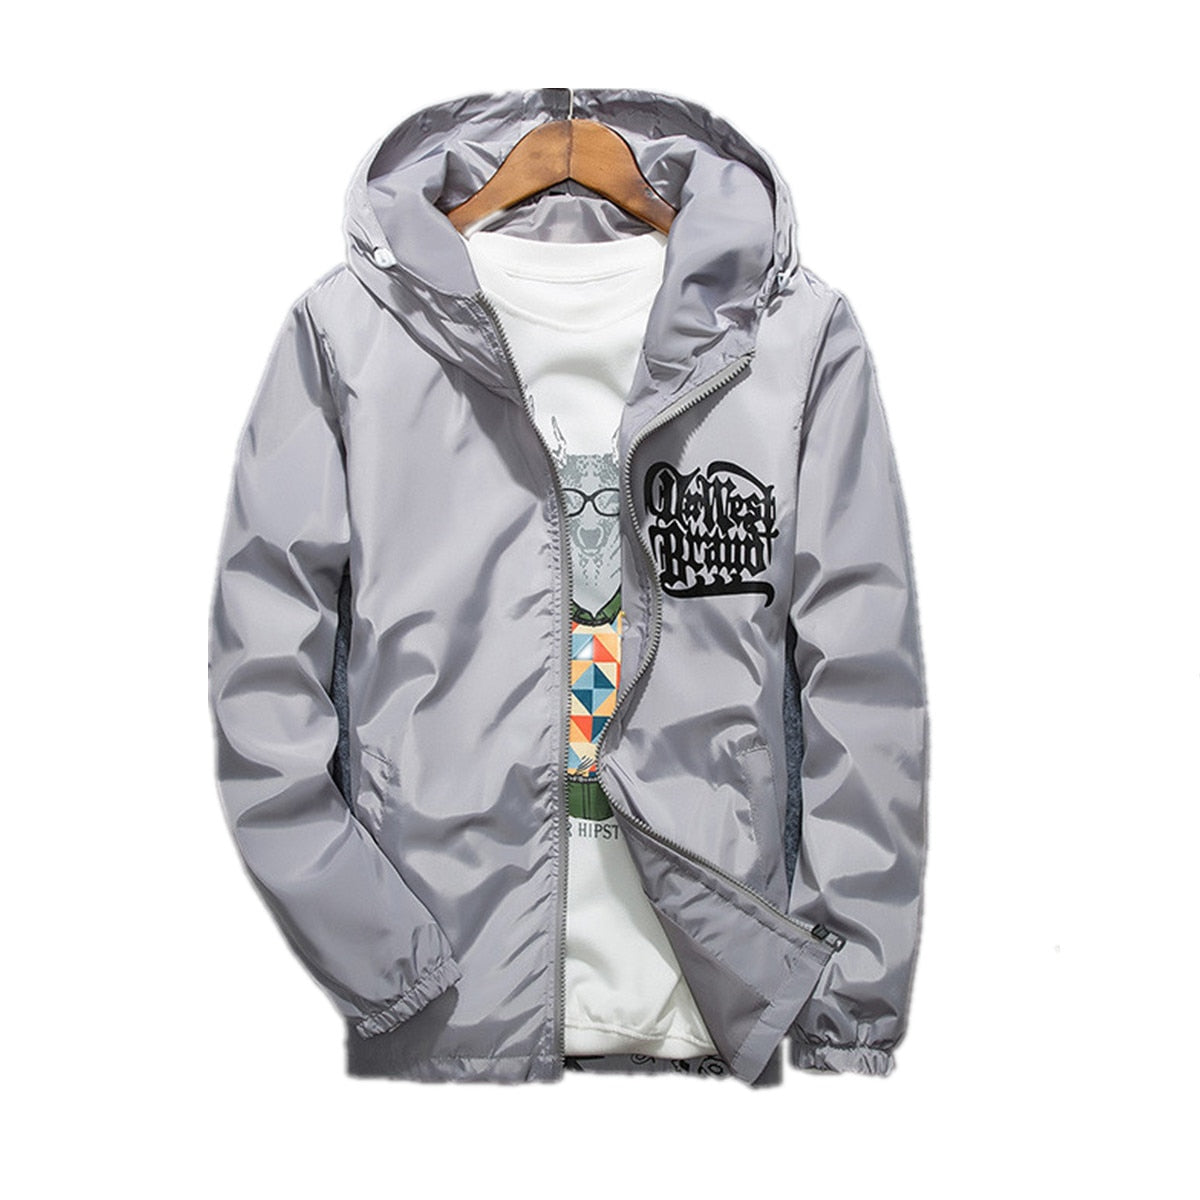 Be free windbreaker jacket